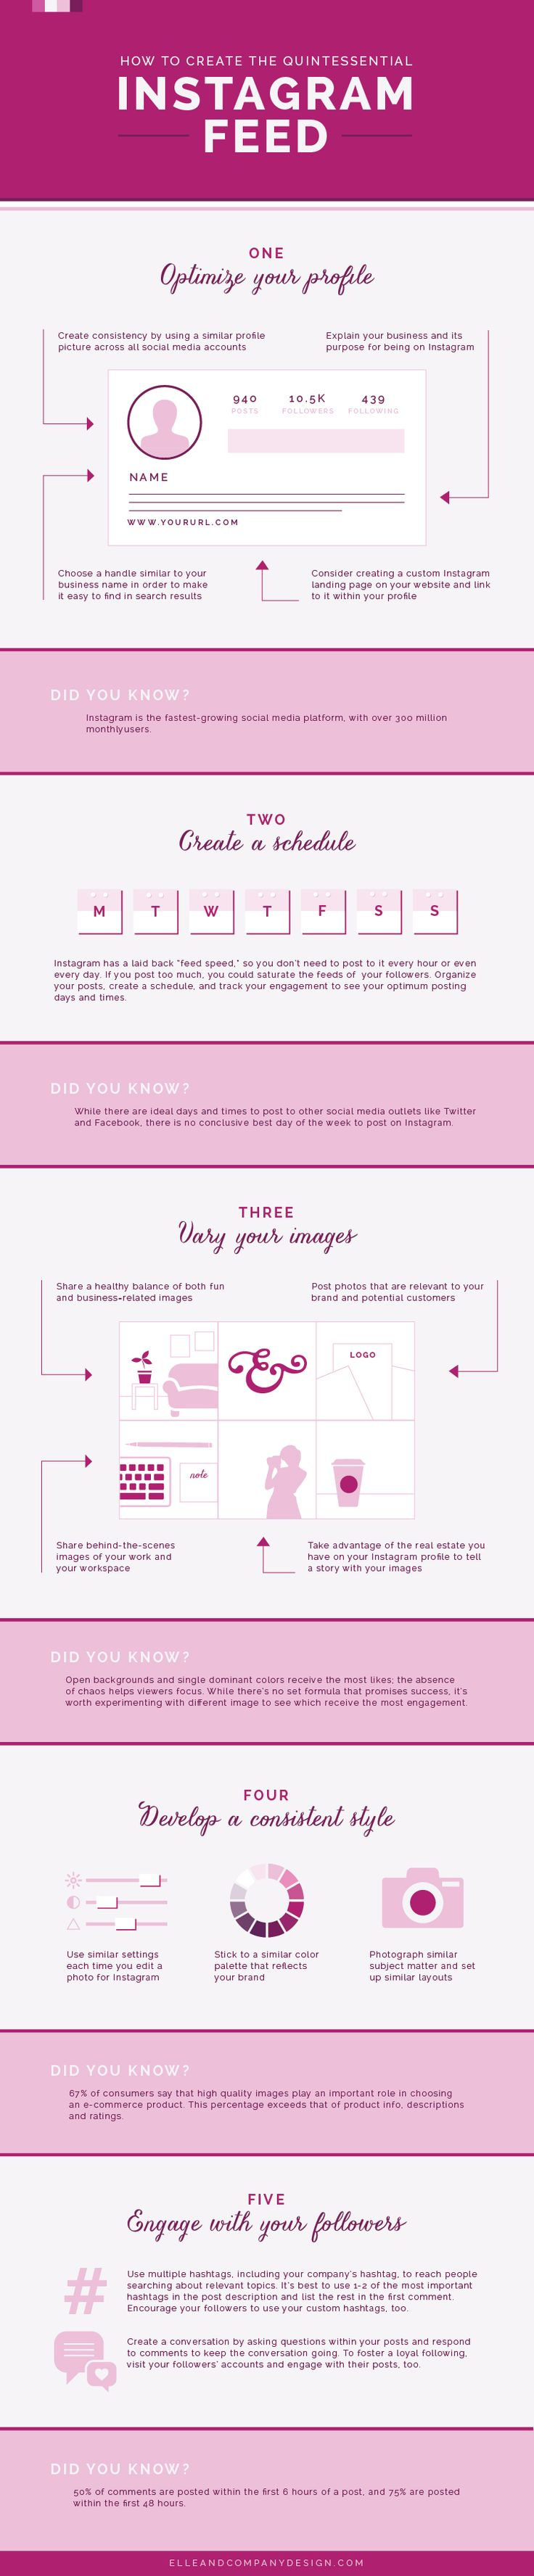 How to Have a Professional Instagram Everyone Wants to Follow -The Muse